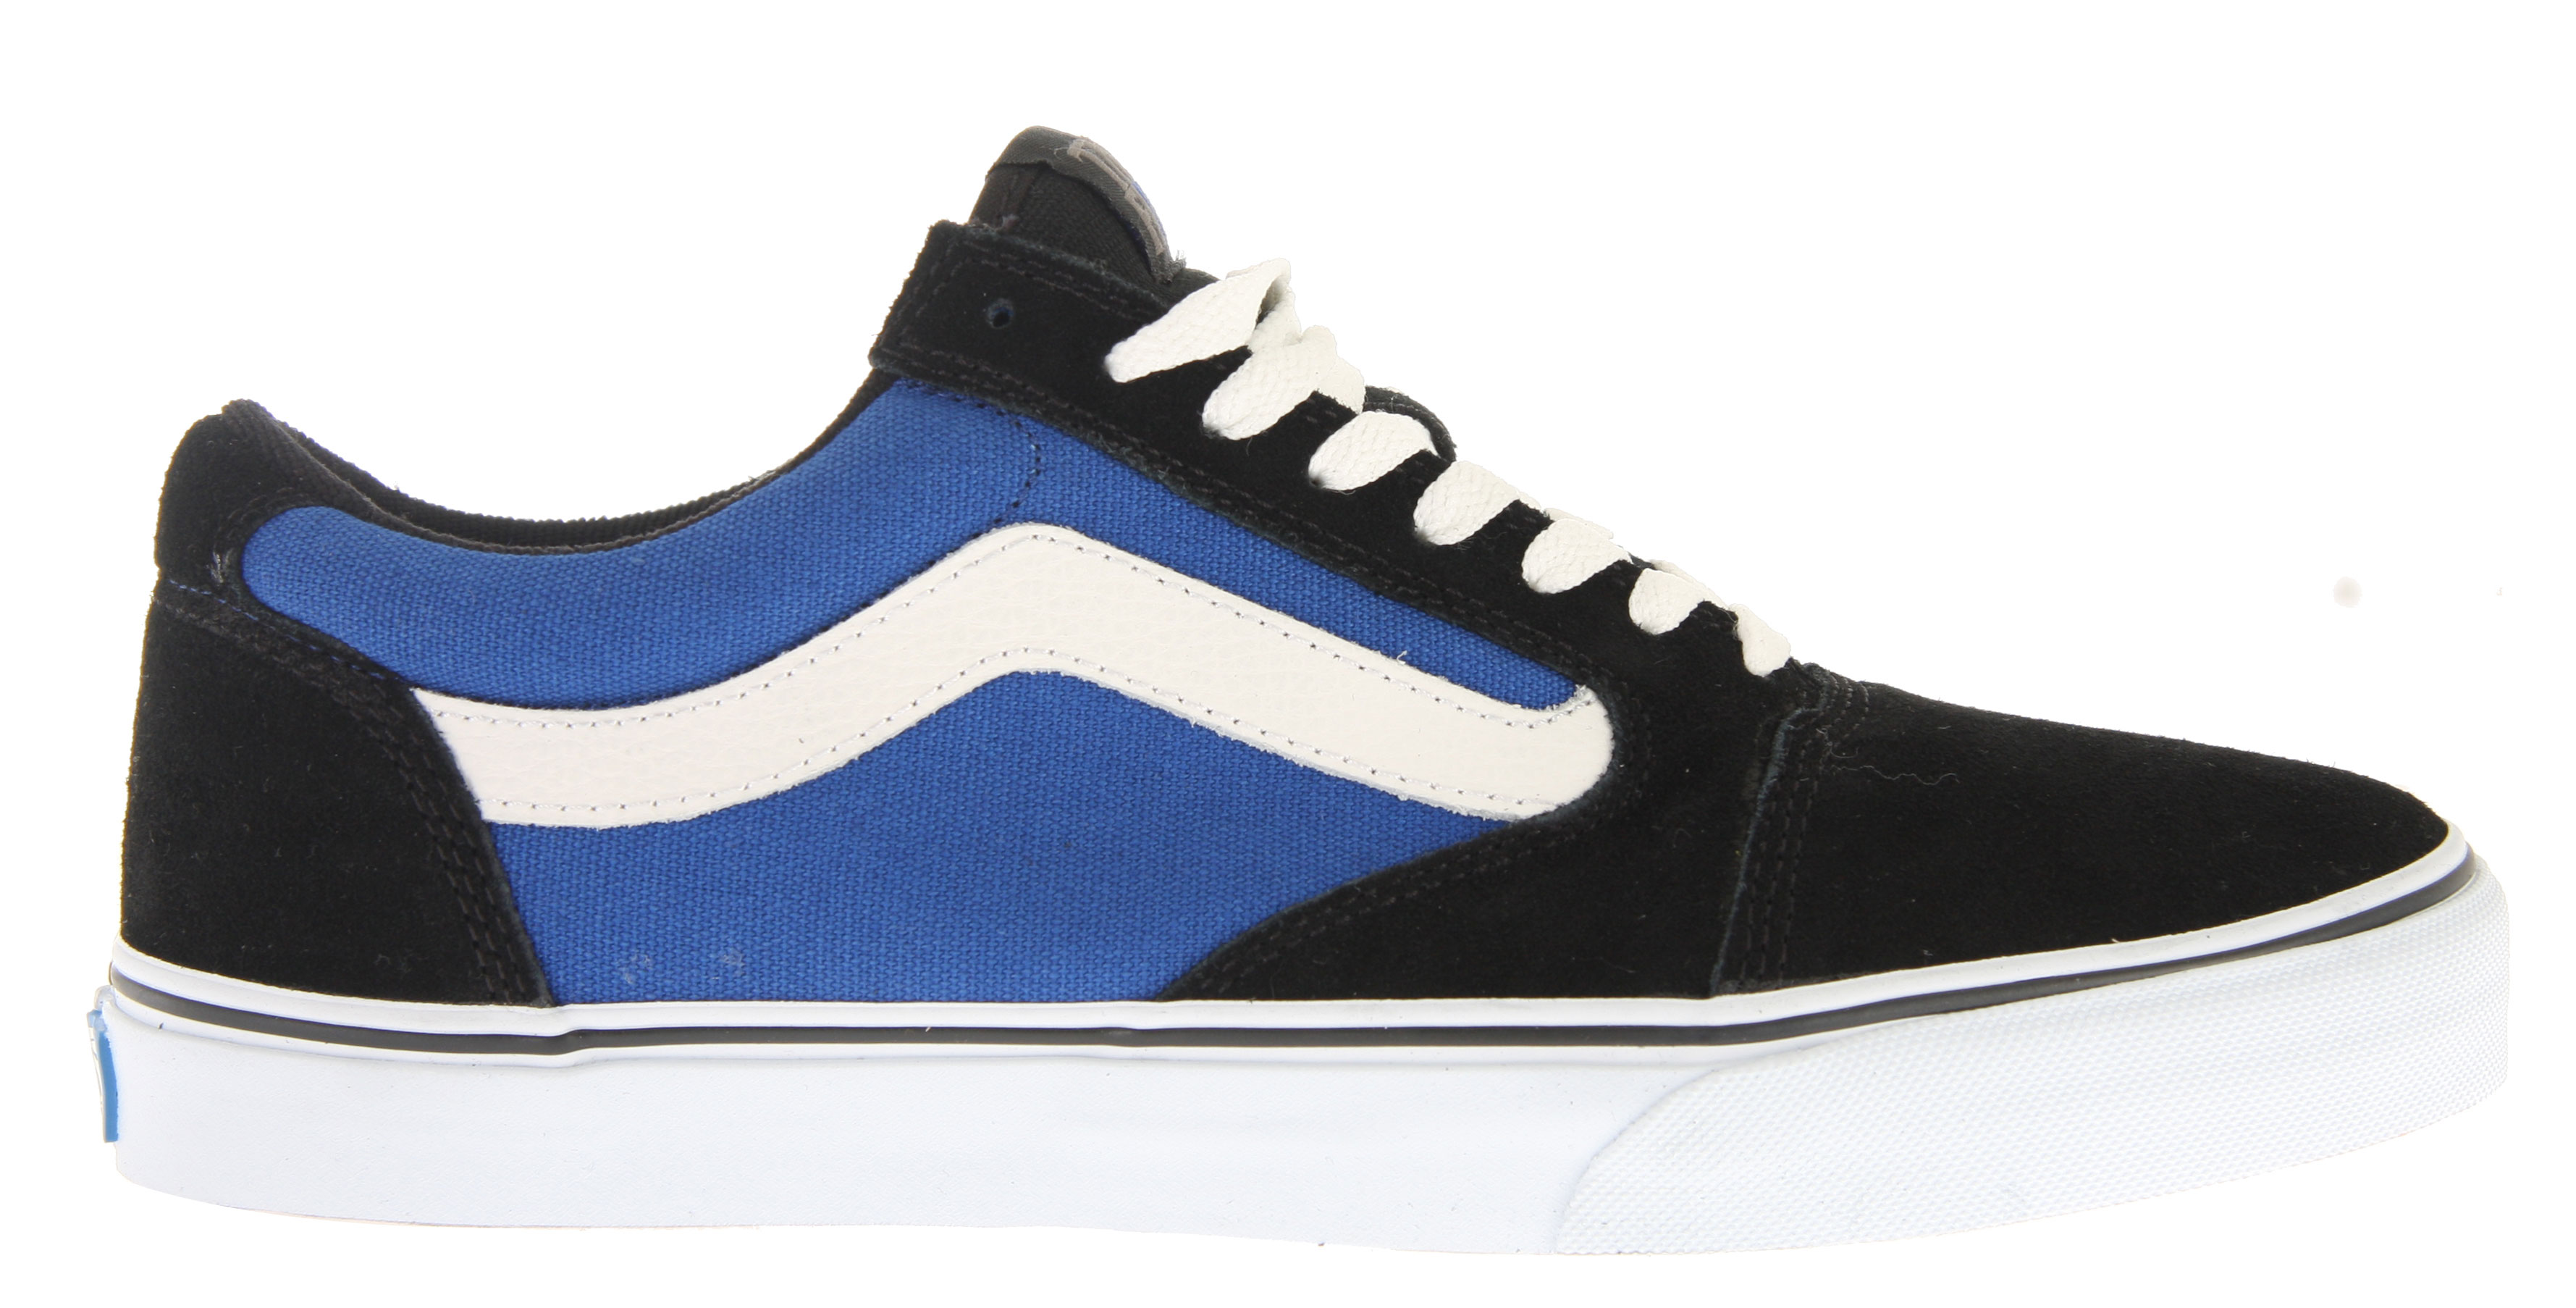 Skateboard Tony's favorite Vans Classic is the Old Skool and the styling cues are evident in the Vans TNT 5 Skate Shoes along with new signature upgrade components. Looks and performance combine in a skate shoe constructed of a reinforced ollie area, removable co-molded sockliner, the classy sidestripe and waffle rubber soles. - $38.95